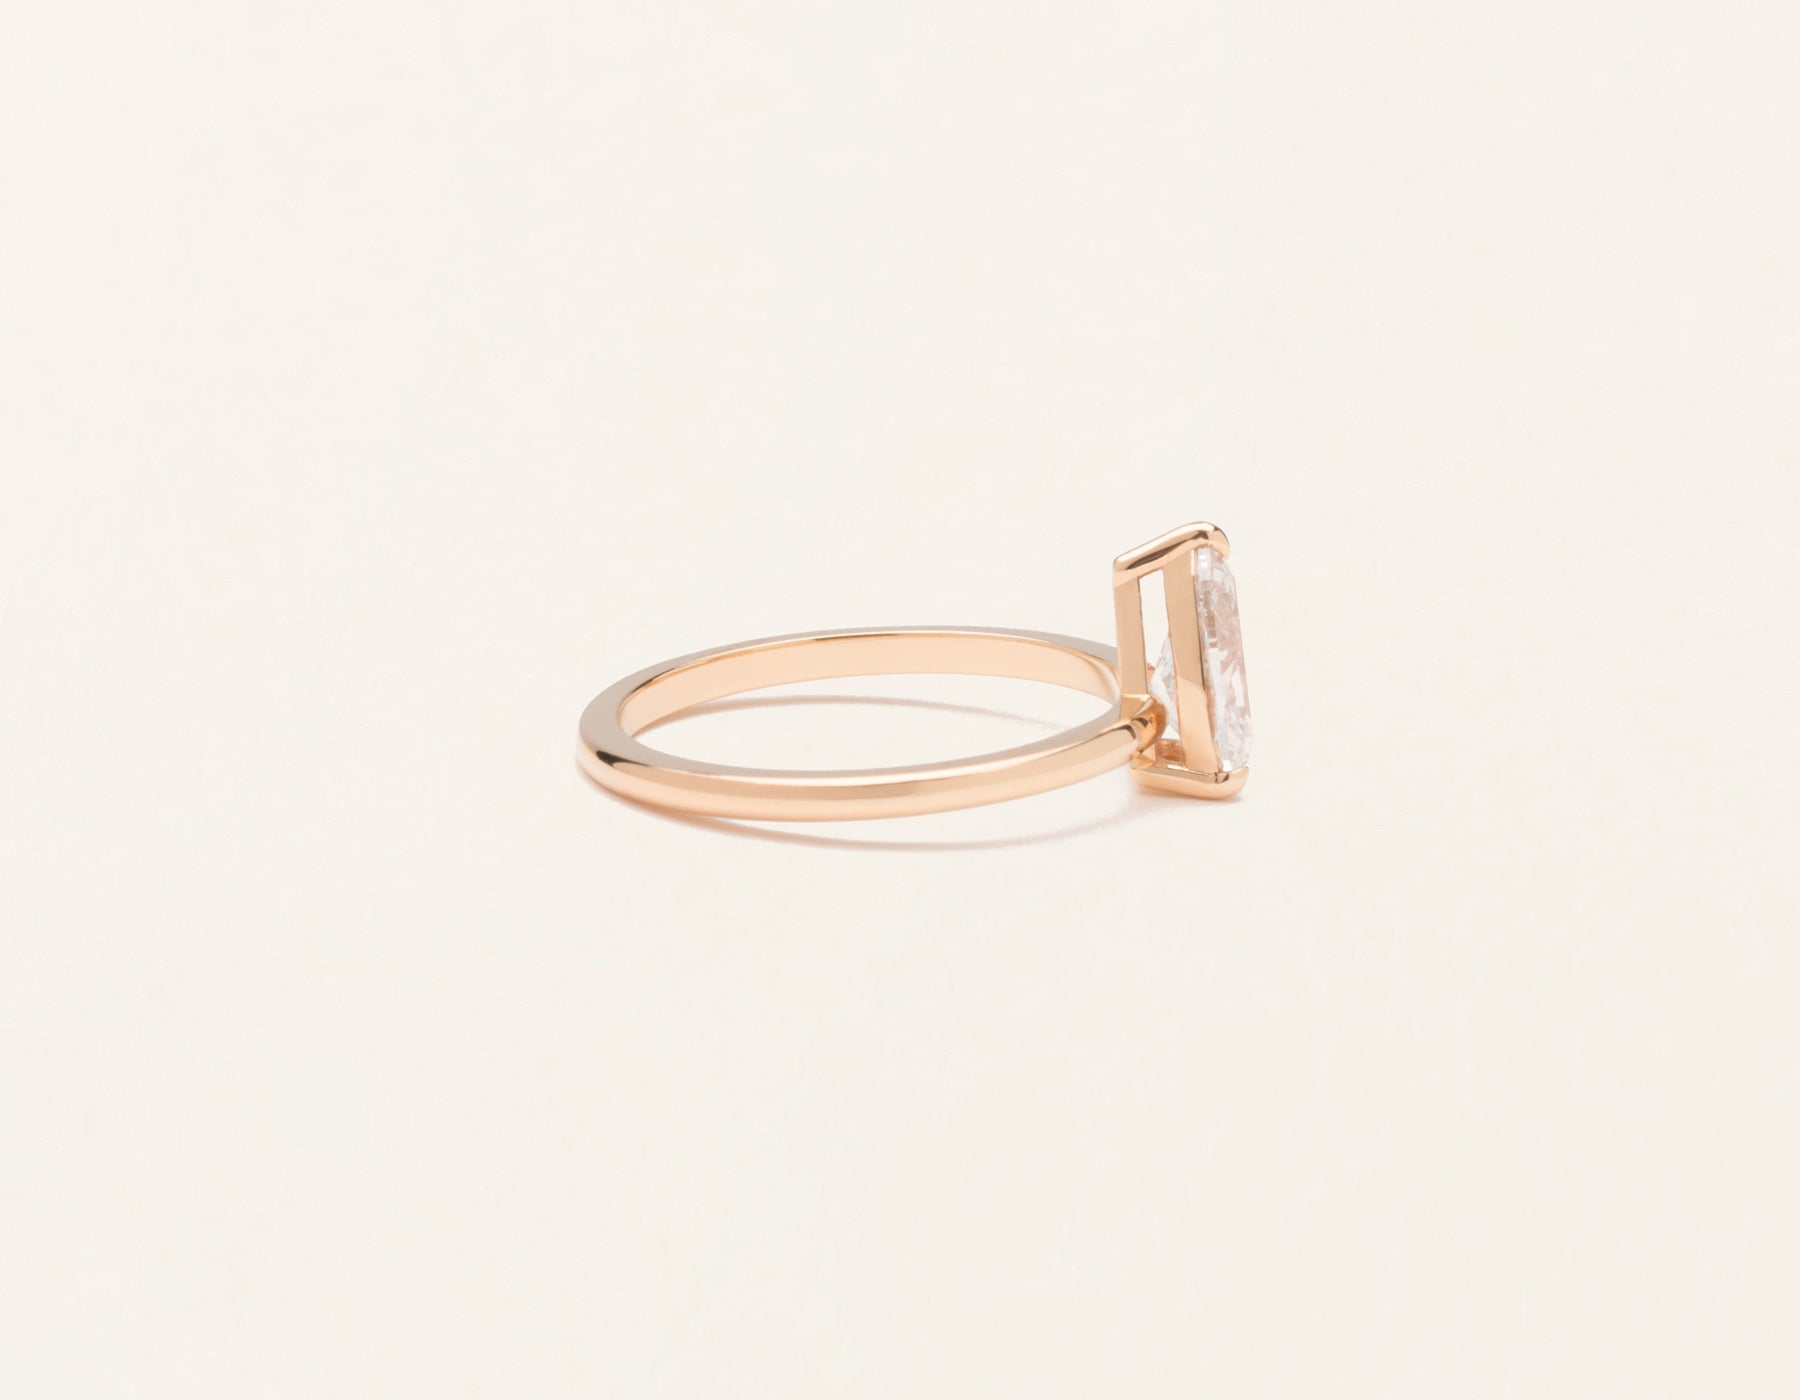 Simple modern 18k solid rose gold 1 carat pear diamond engagement ring Vrai & Oro